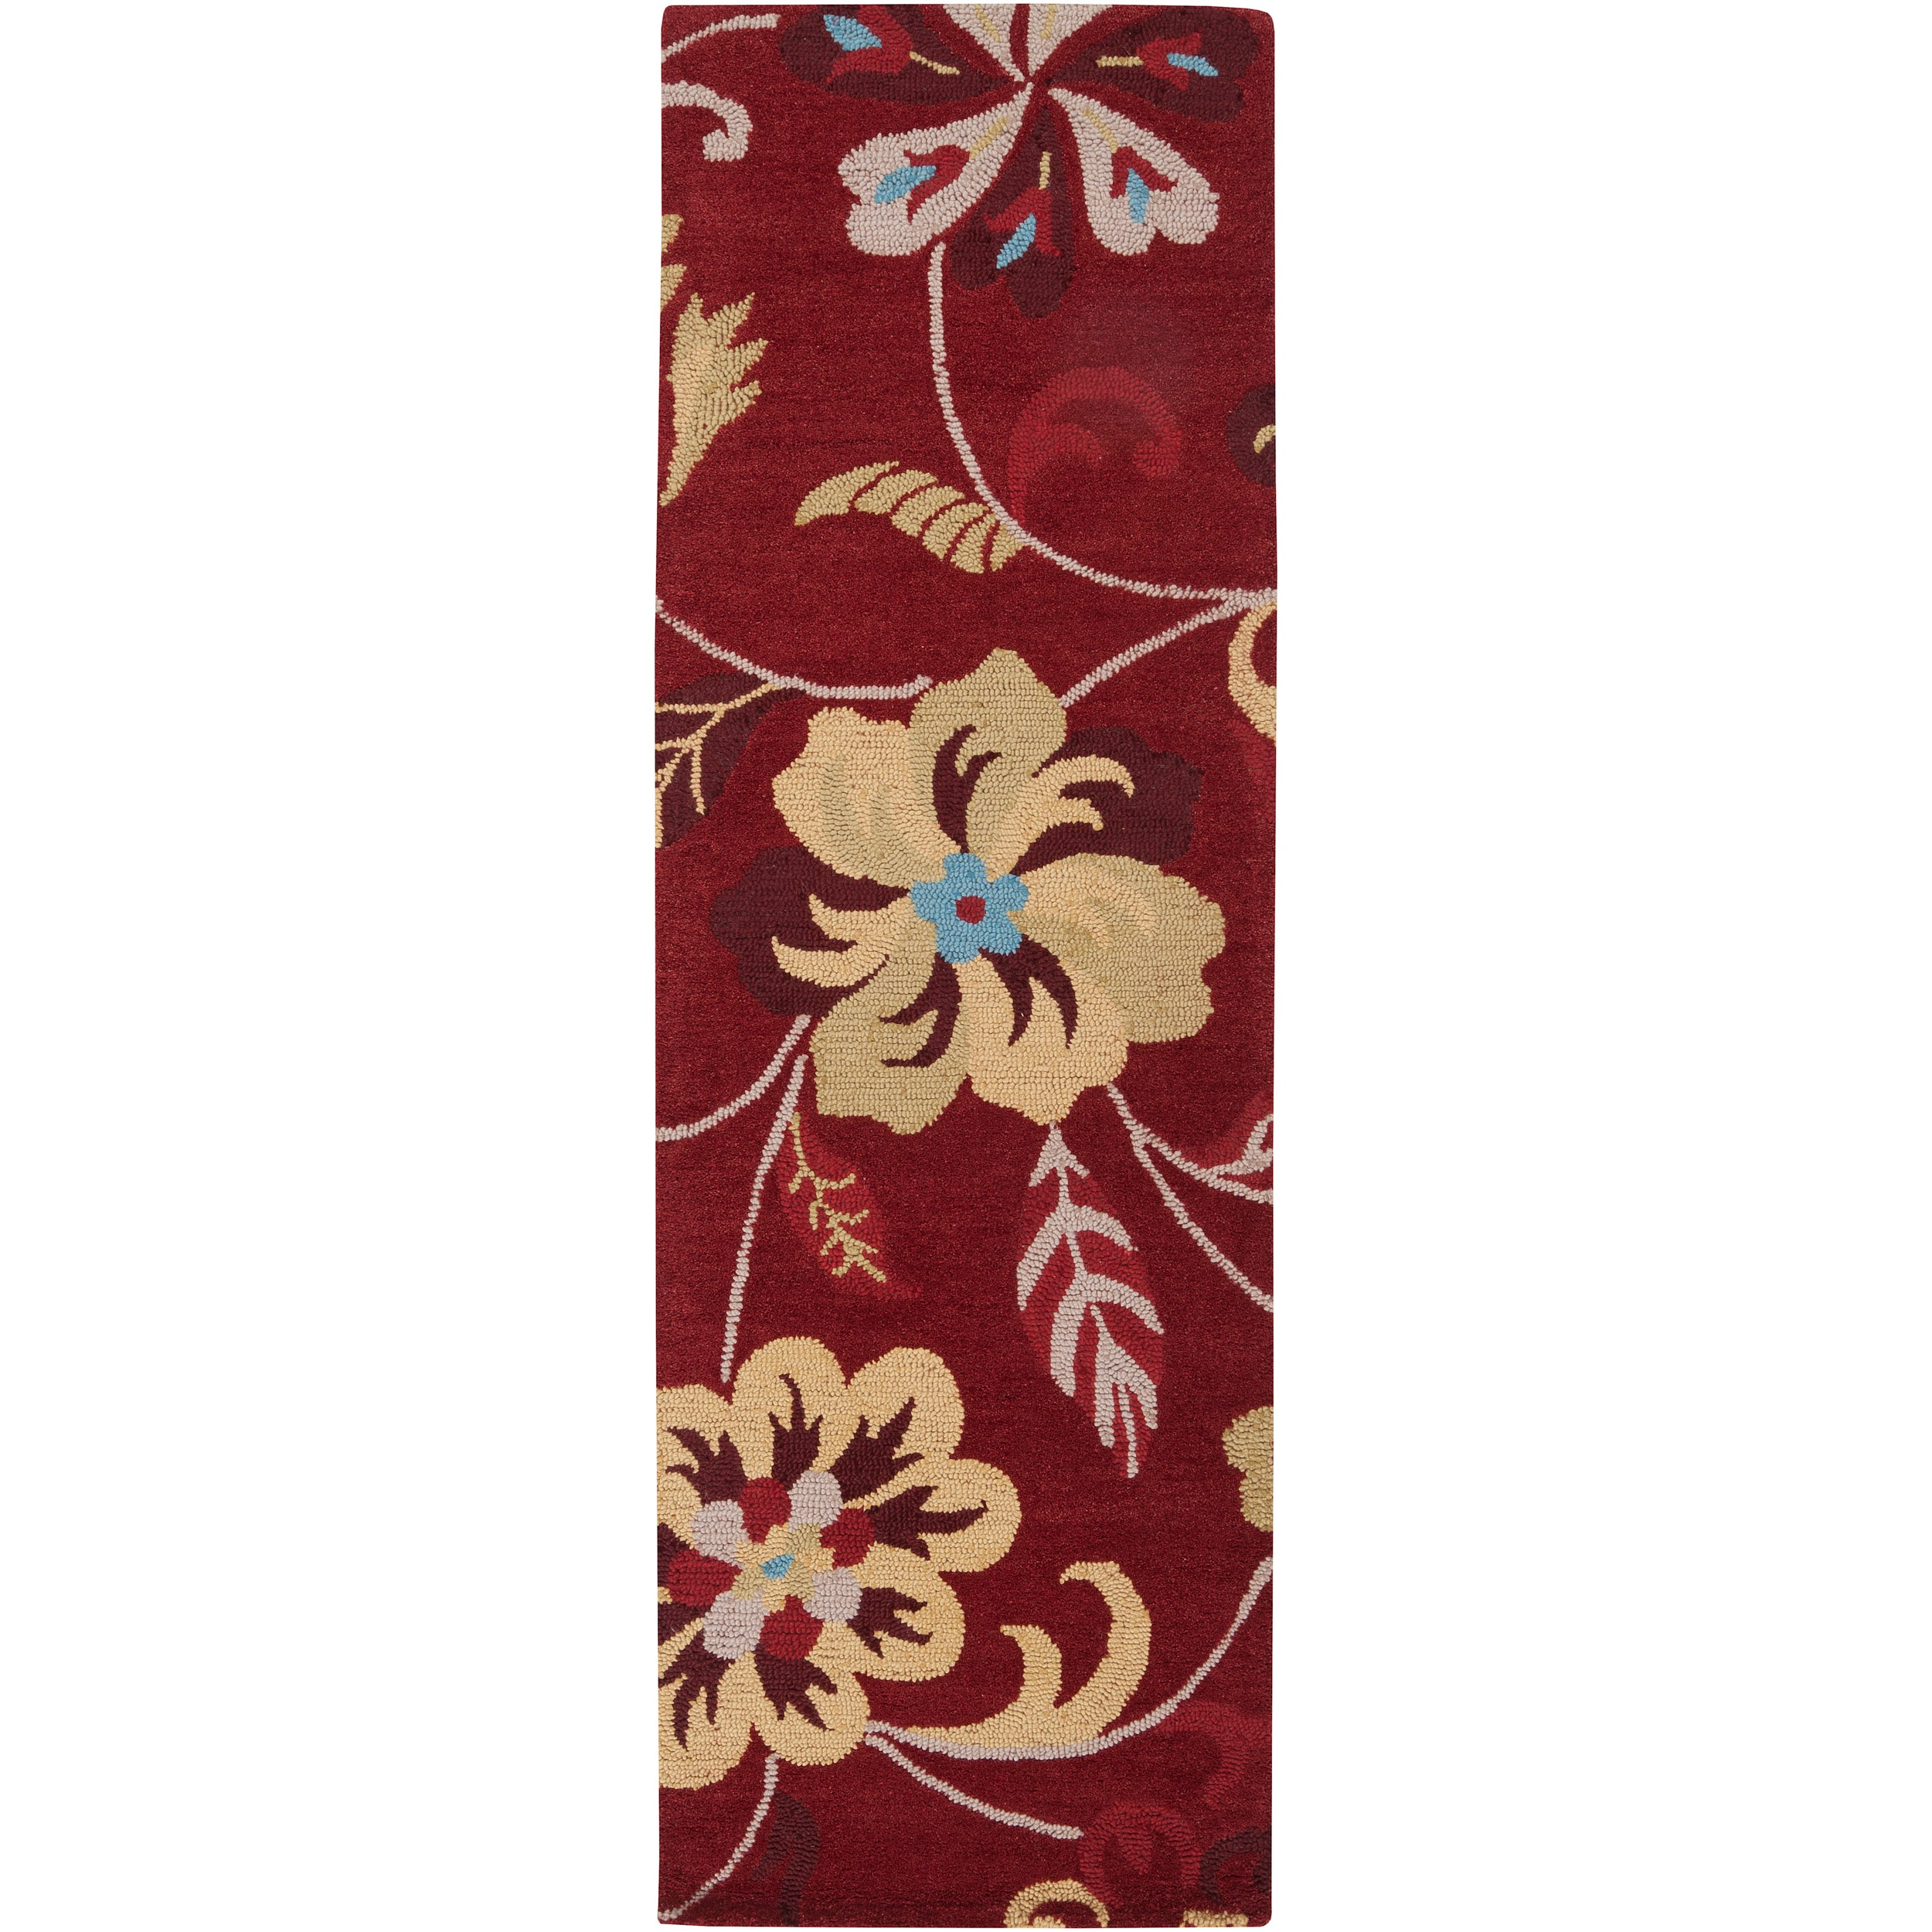 Hand-tufted Multicolored Centennial Wool Rug (2'6 x 8')